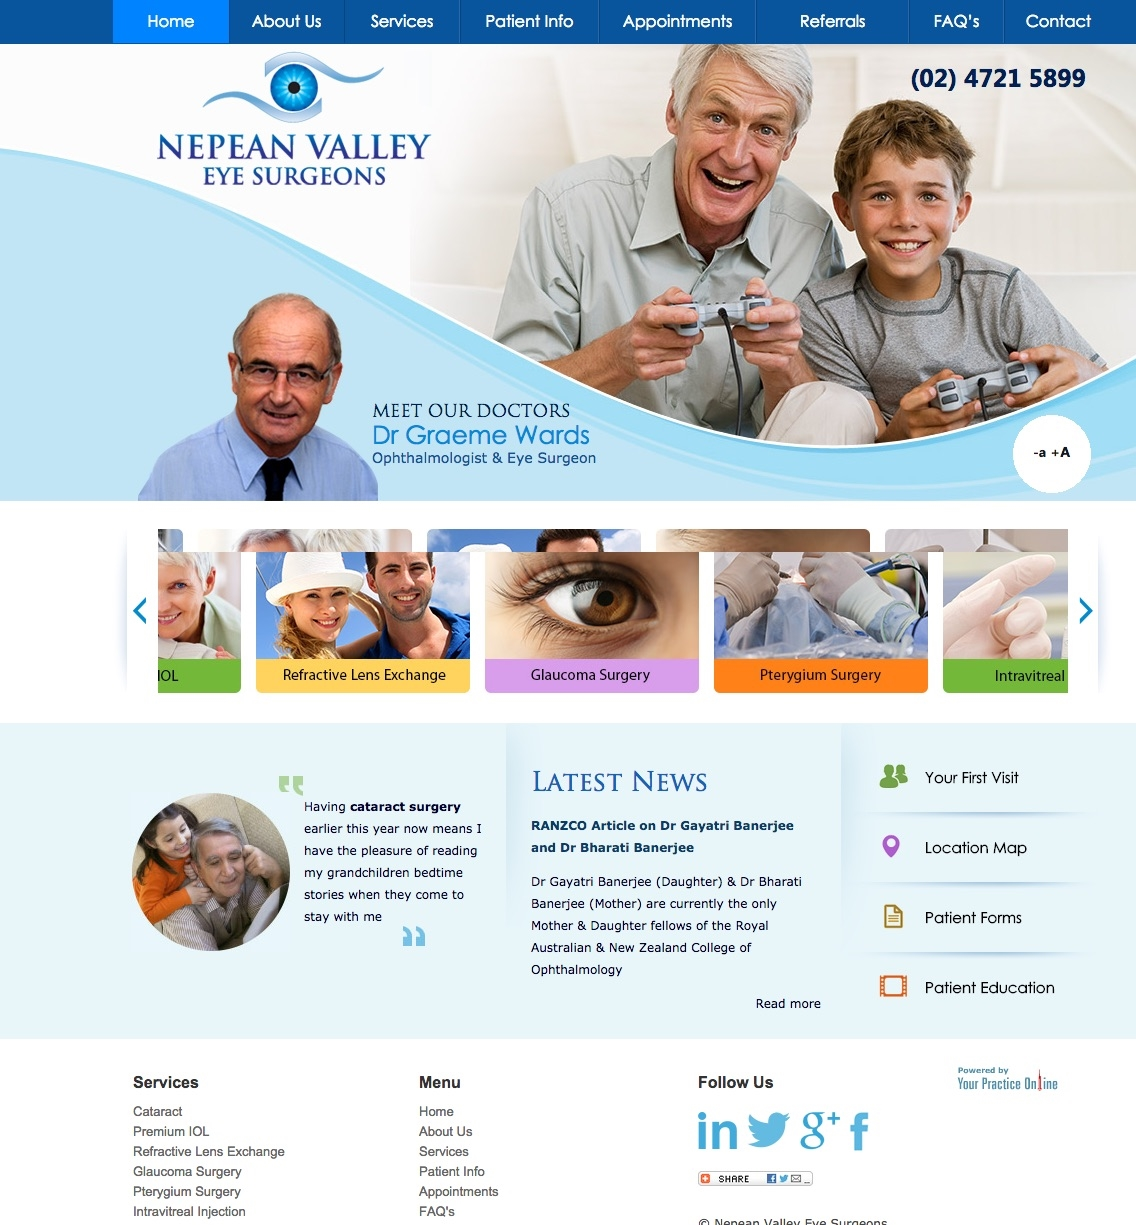 Sydney Eye Surgeons Website